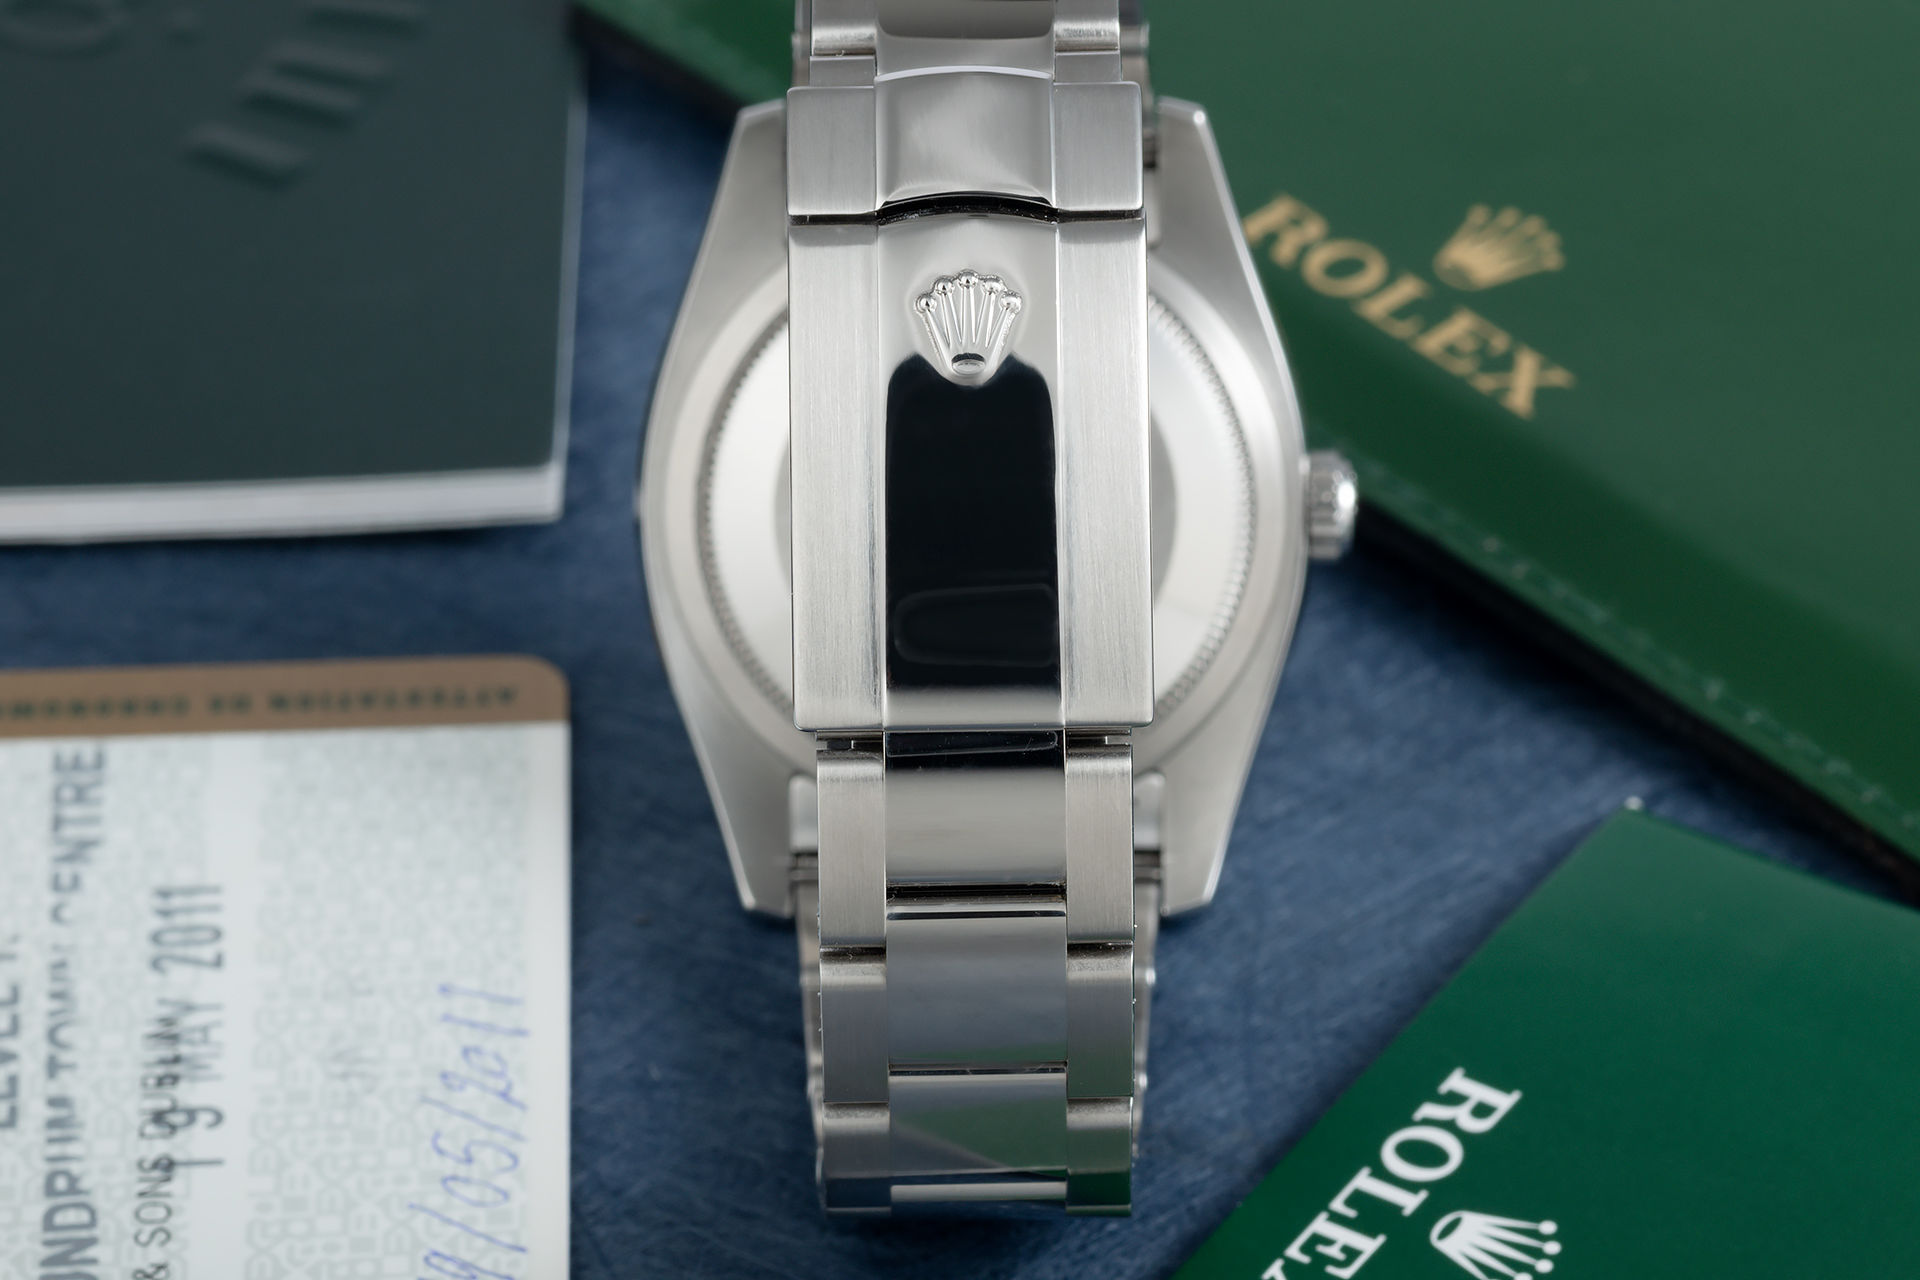 ref 116234 | White Gold Bezel 'Box & Papers' | Rolex Datejust